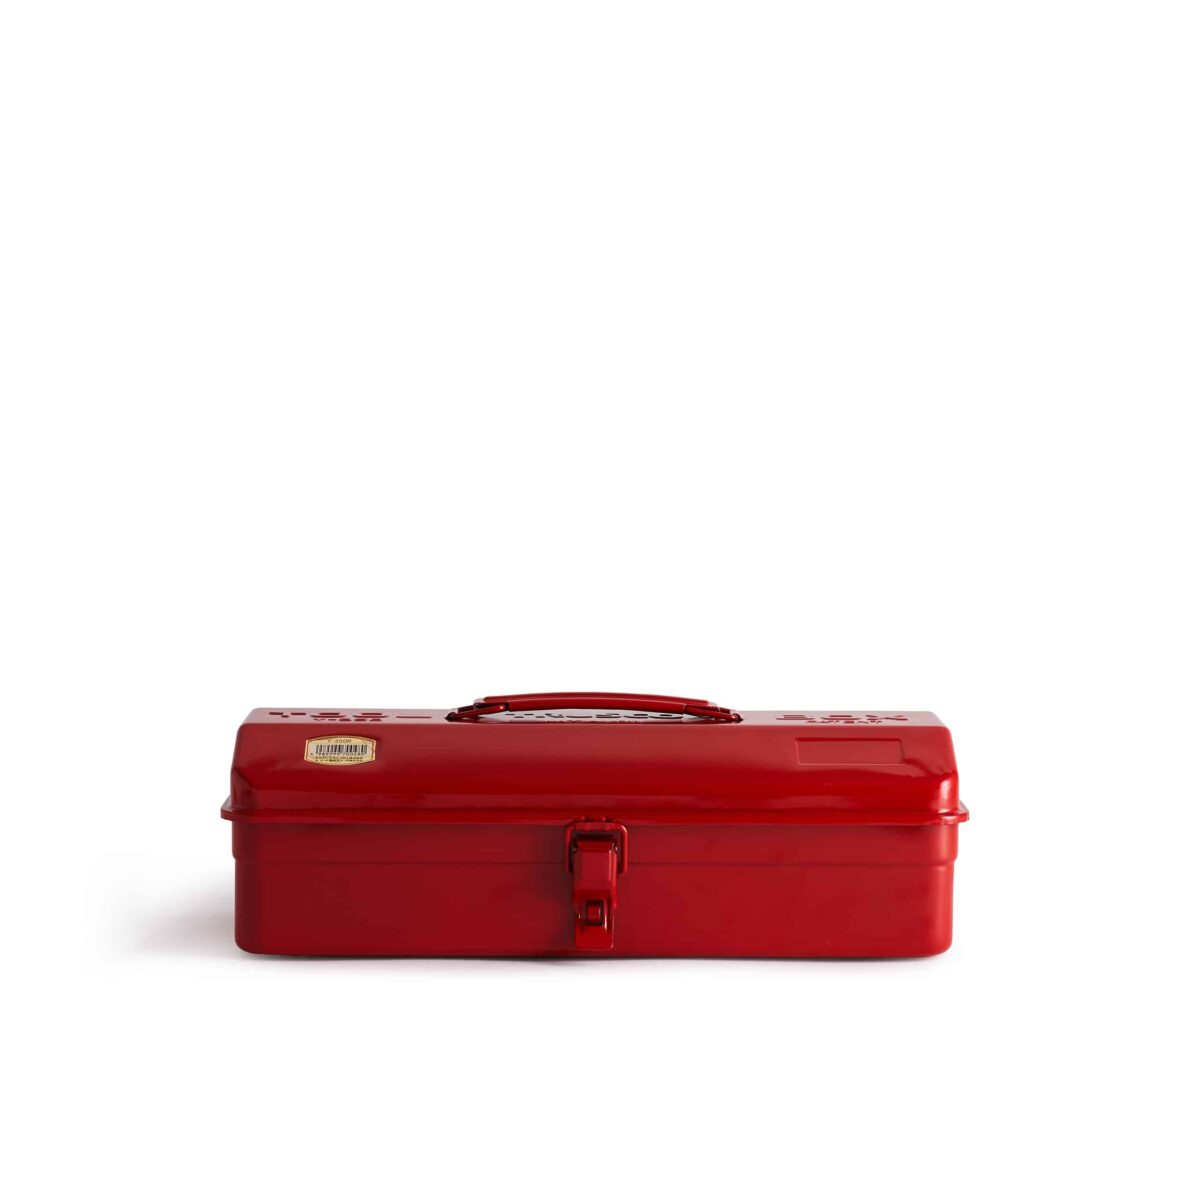 Trusco Toolbox Red- Another-Country- Photo Credit Yeshen Venema -web ready-21.11.185308